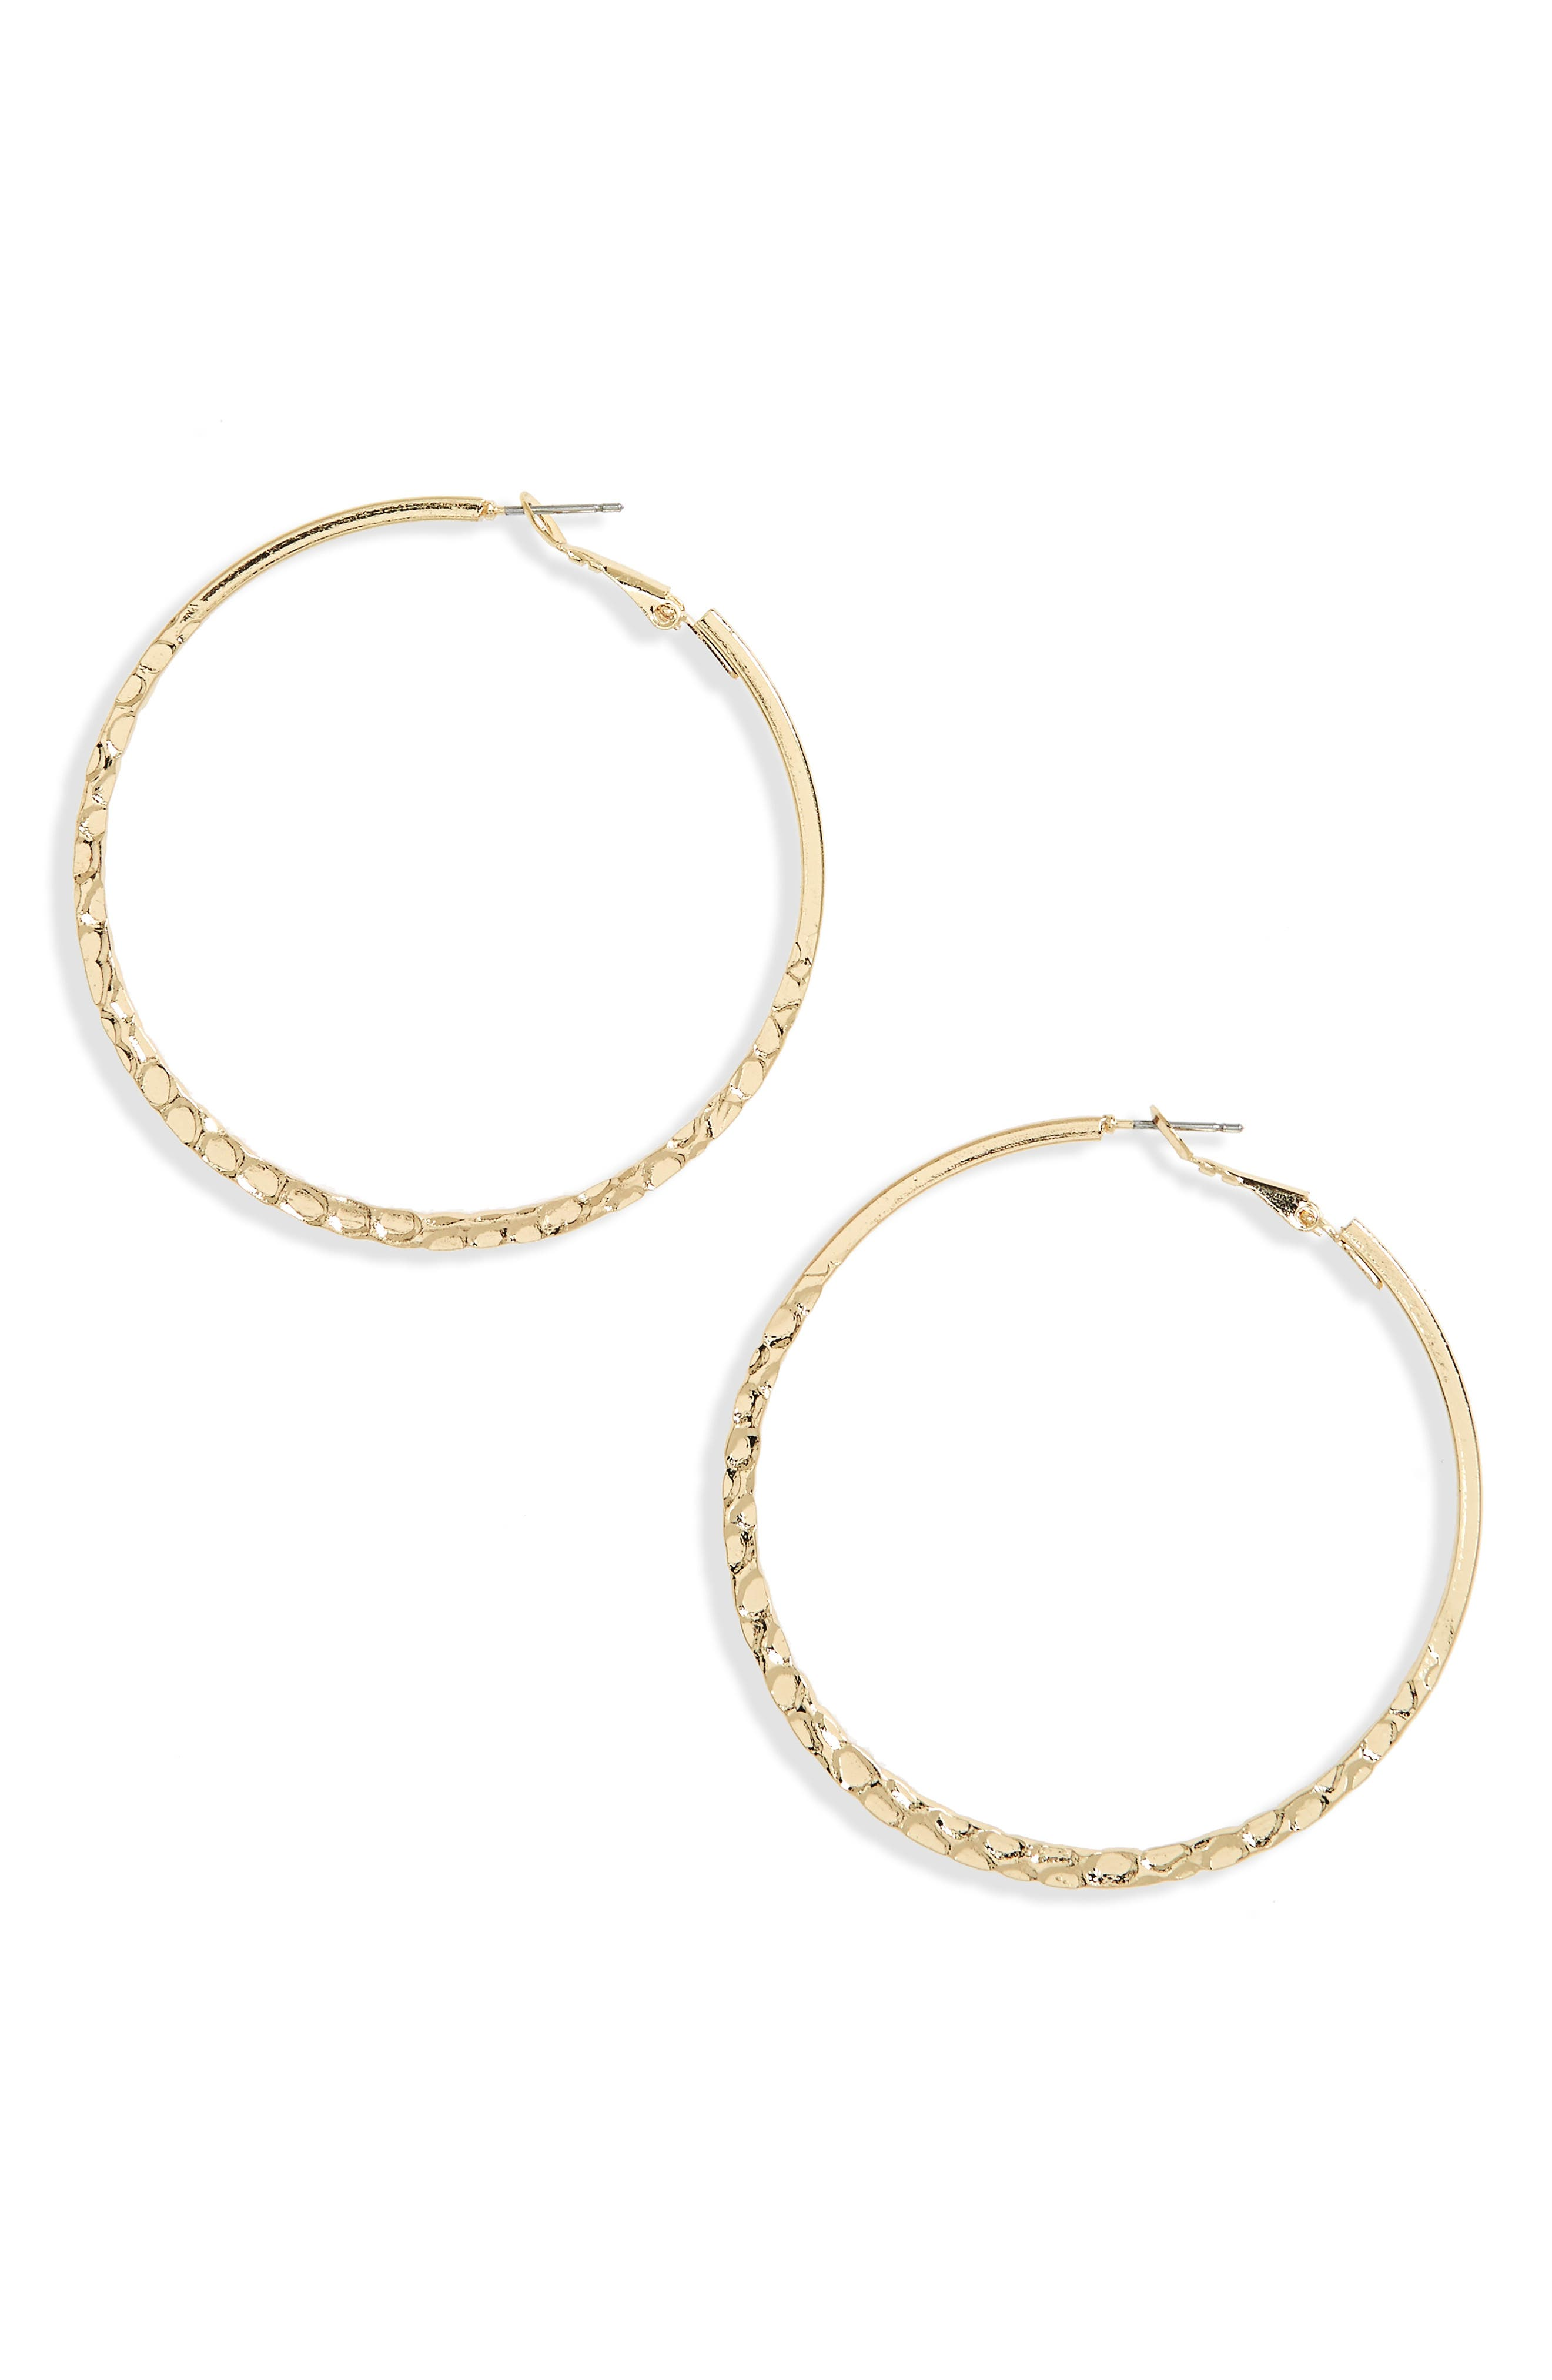 Large Textured Hoop Earrings,                         Main,                         color, Gold